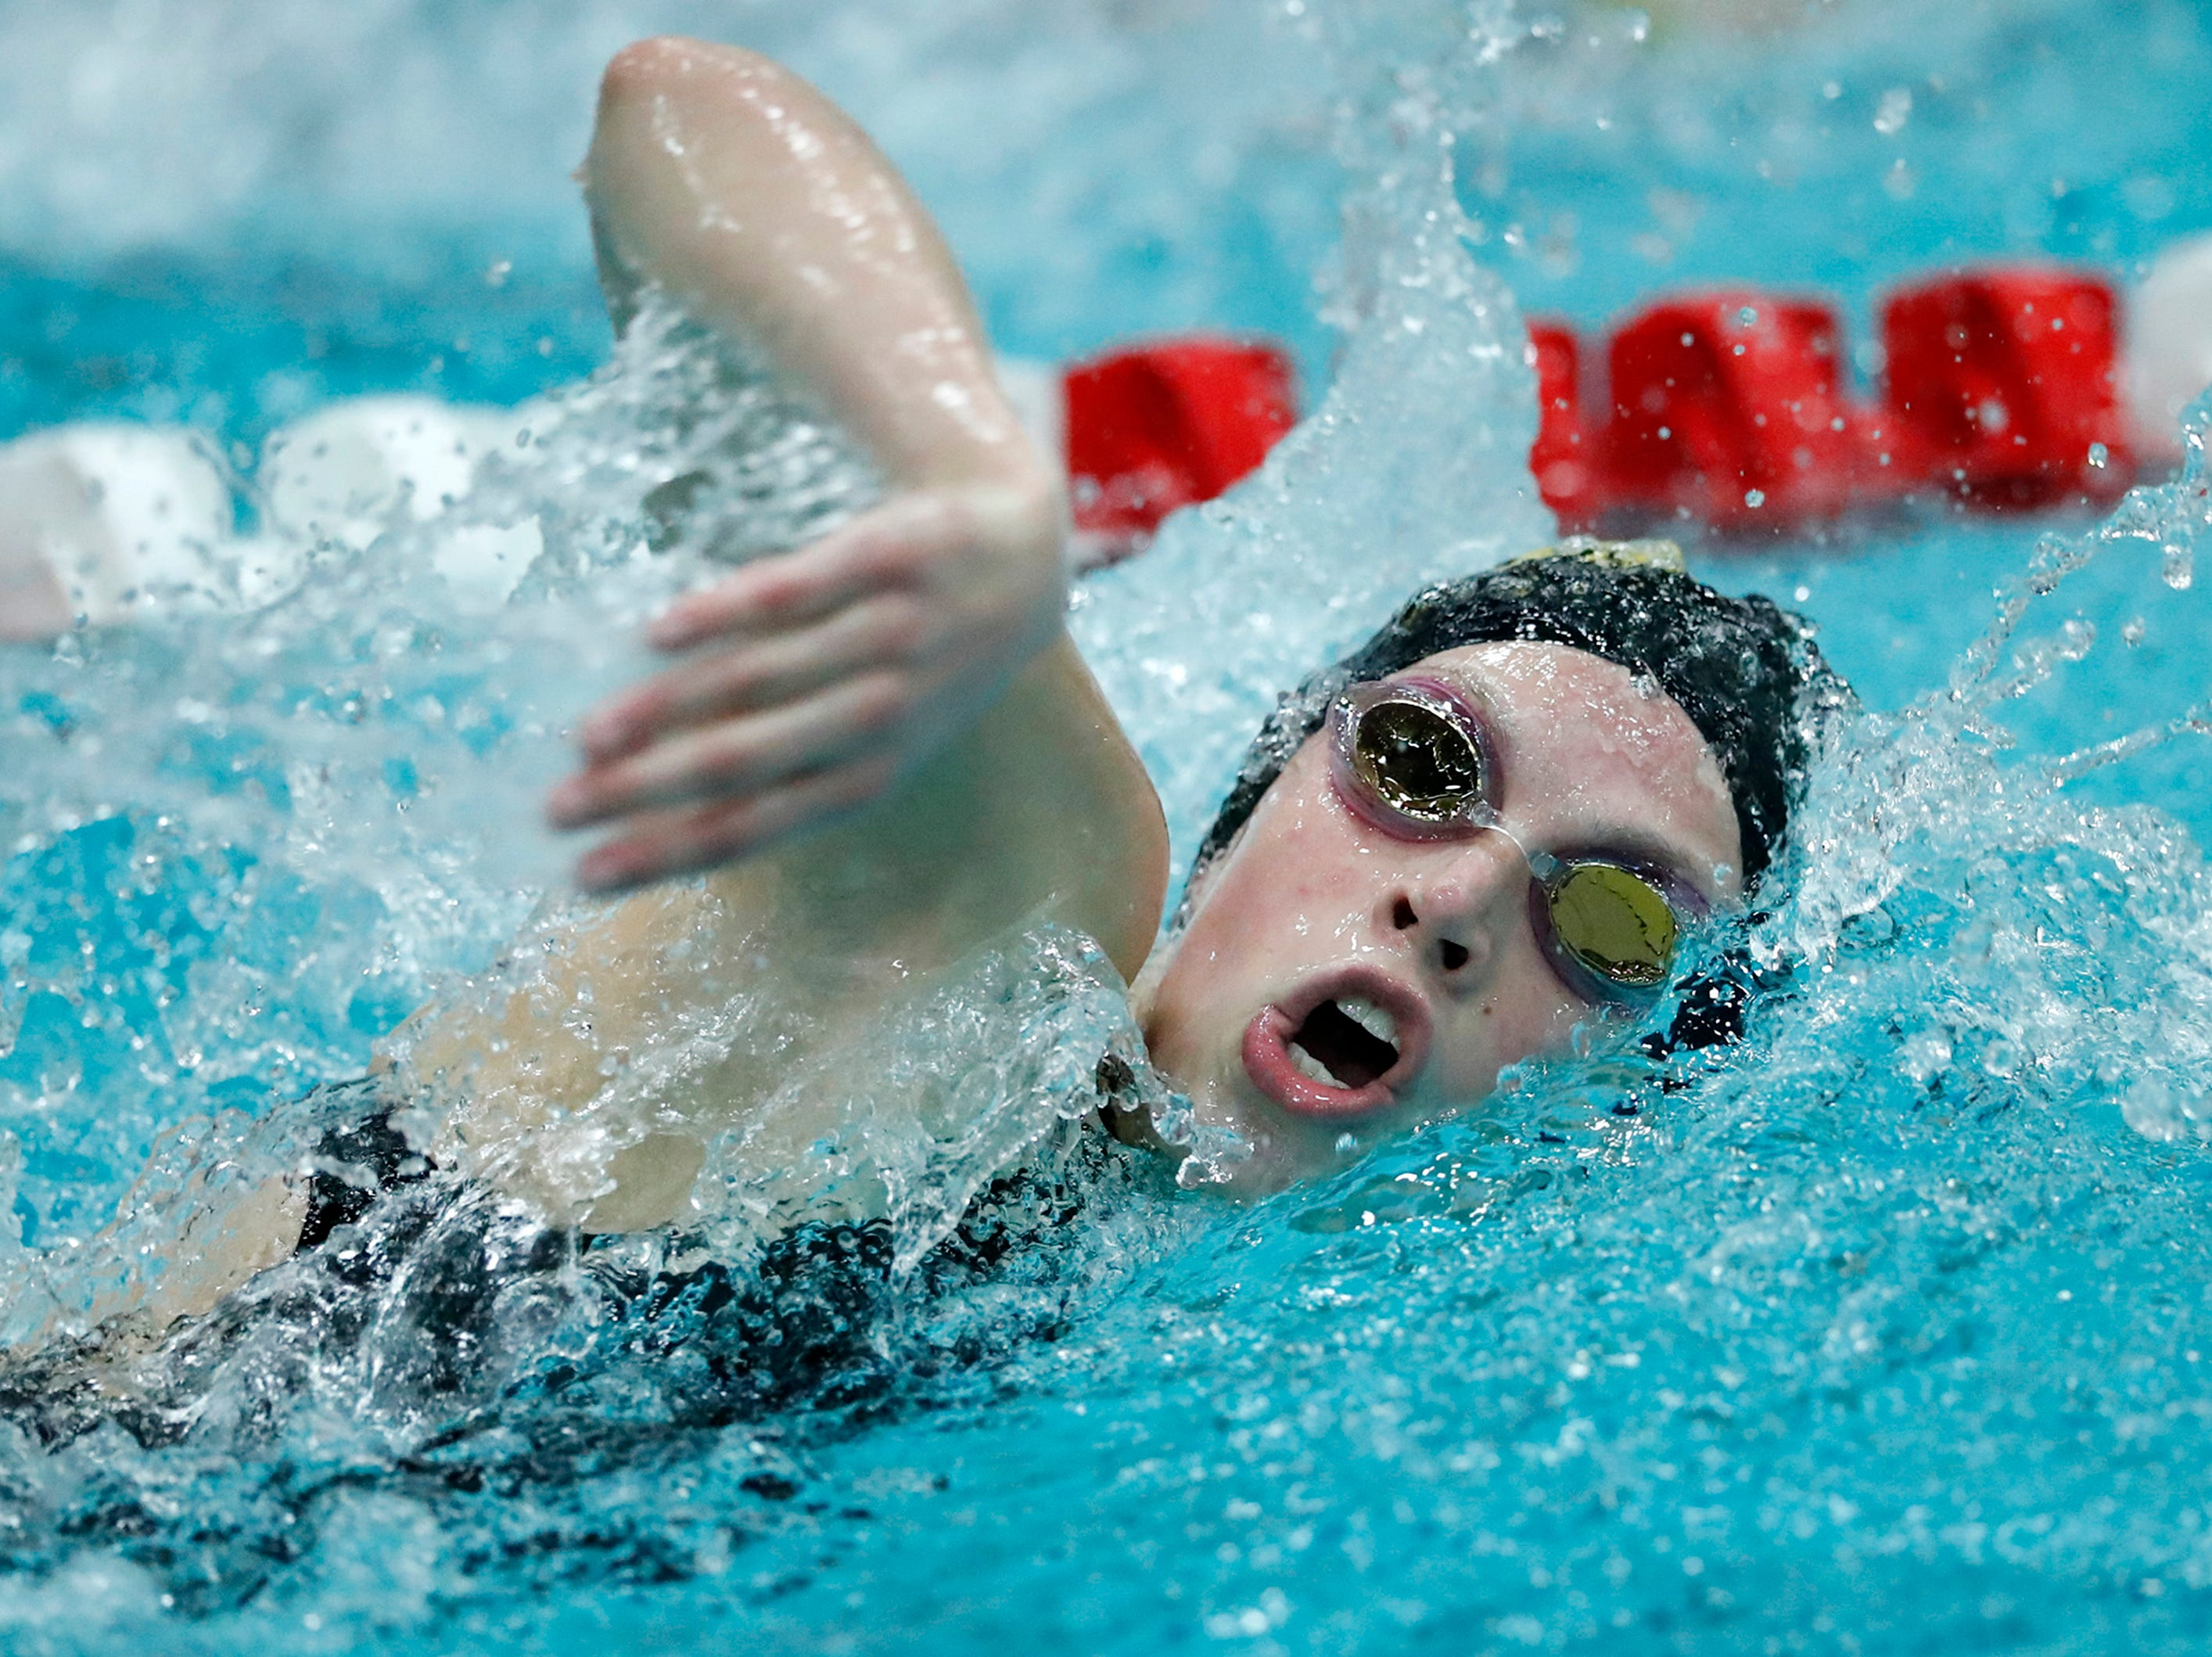 Ashwaubenon's Hallory Domnick races in the 500 yard freestyle during the WIAA Division 2 State Swimming and Diving meet Friday, Nov. 9, 2018, at the UW Natatorium in Madison, Wis.Danny Damiani/USA TODAY NETWORK-Wisconsin